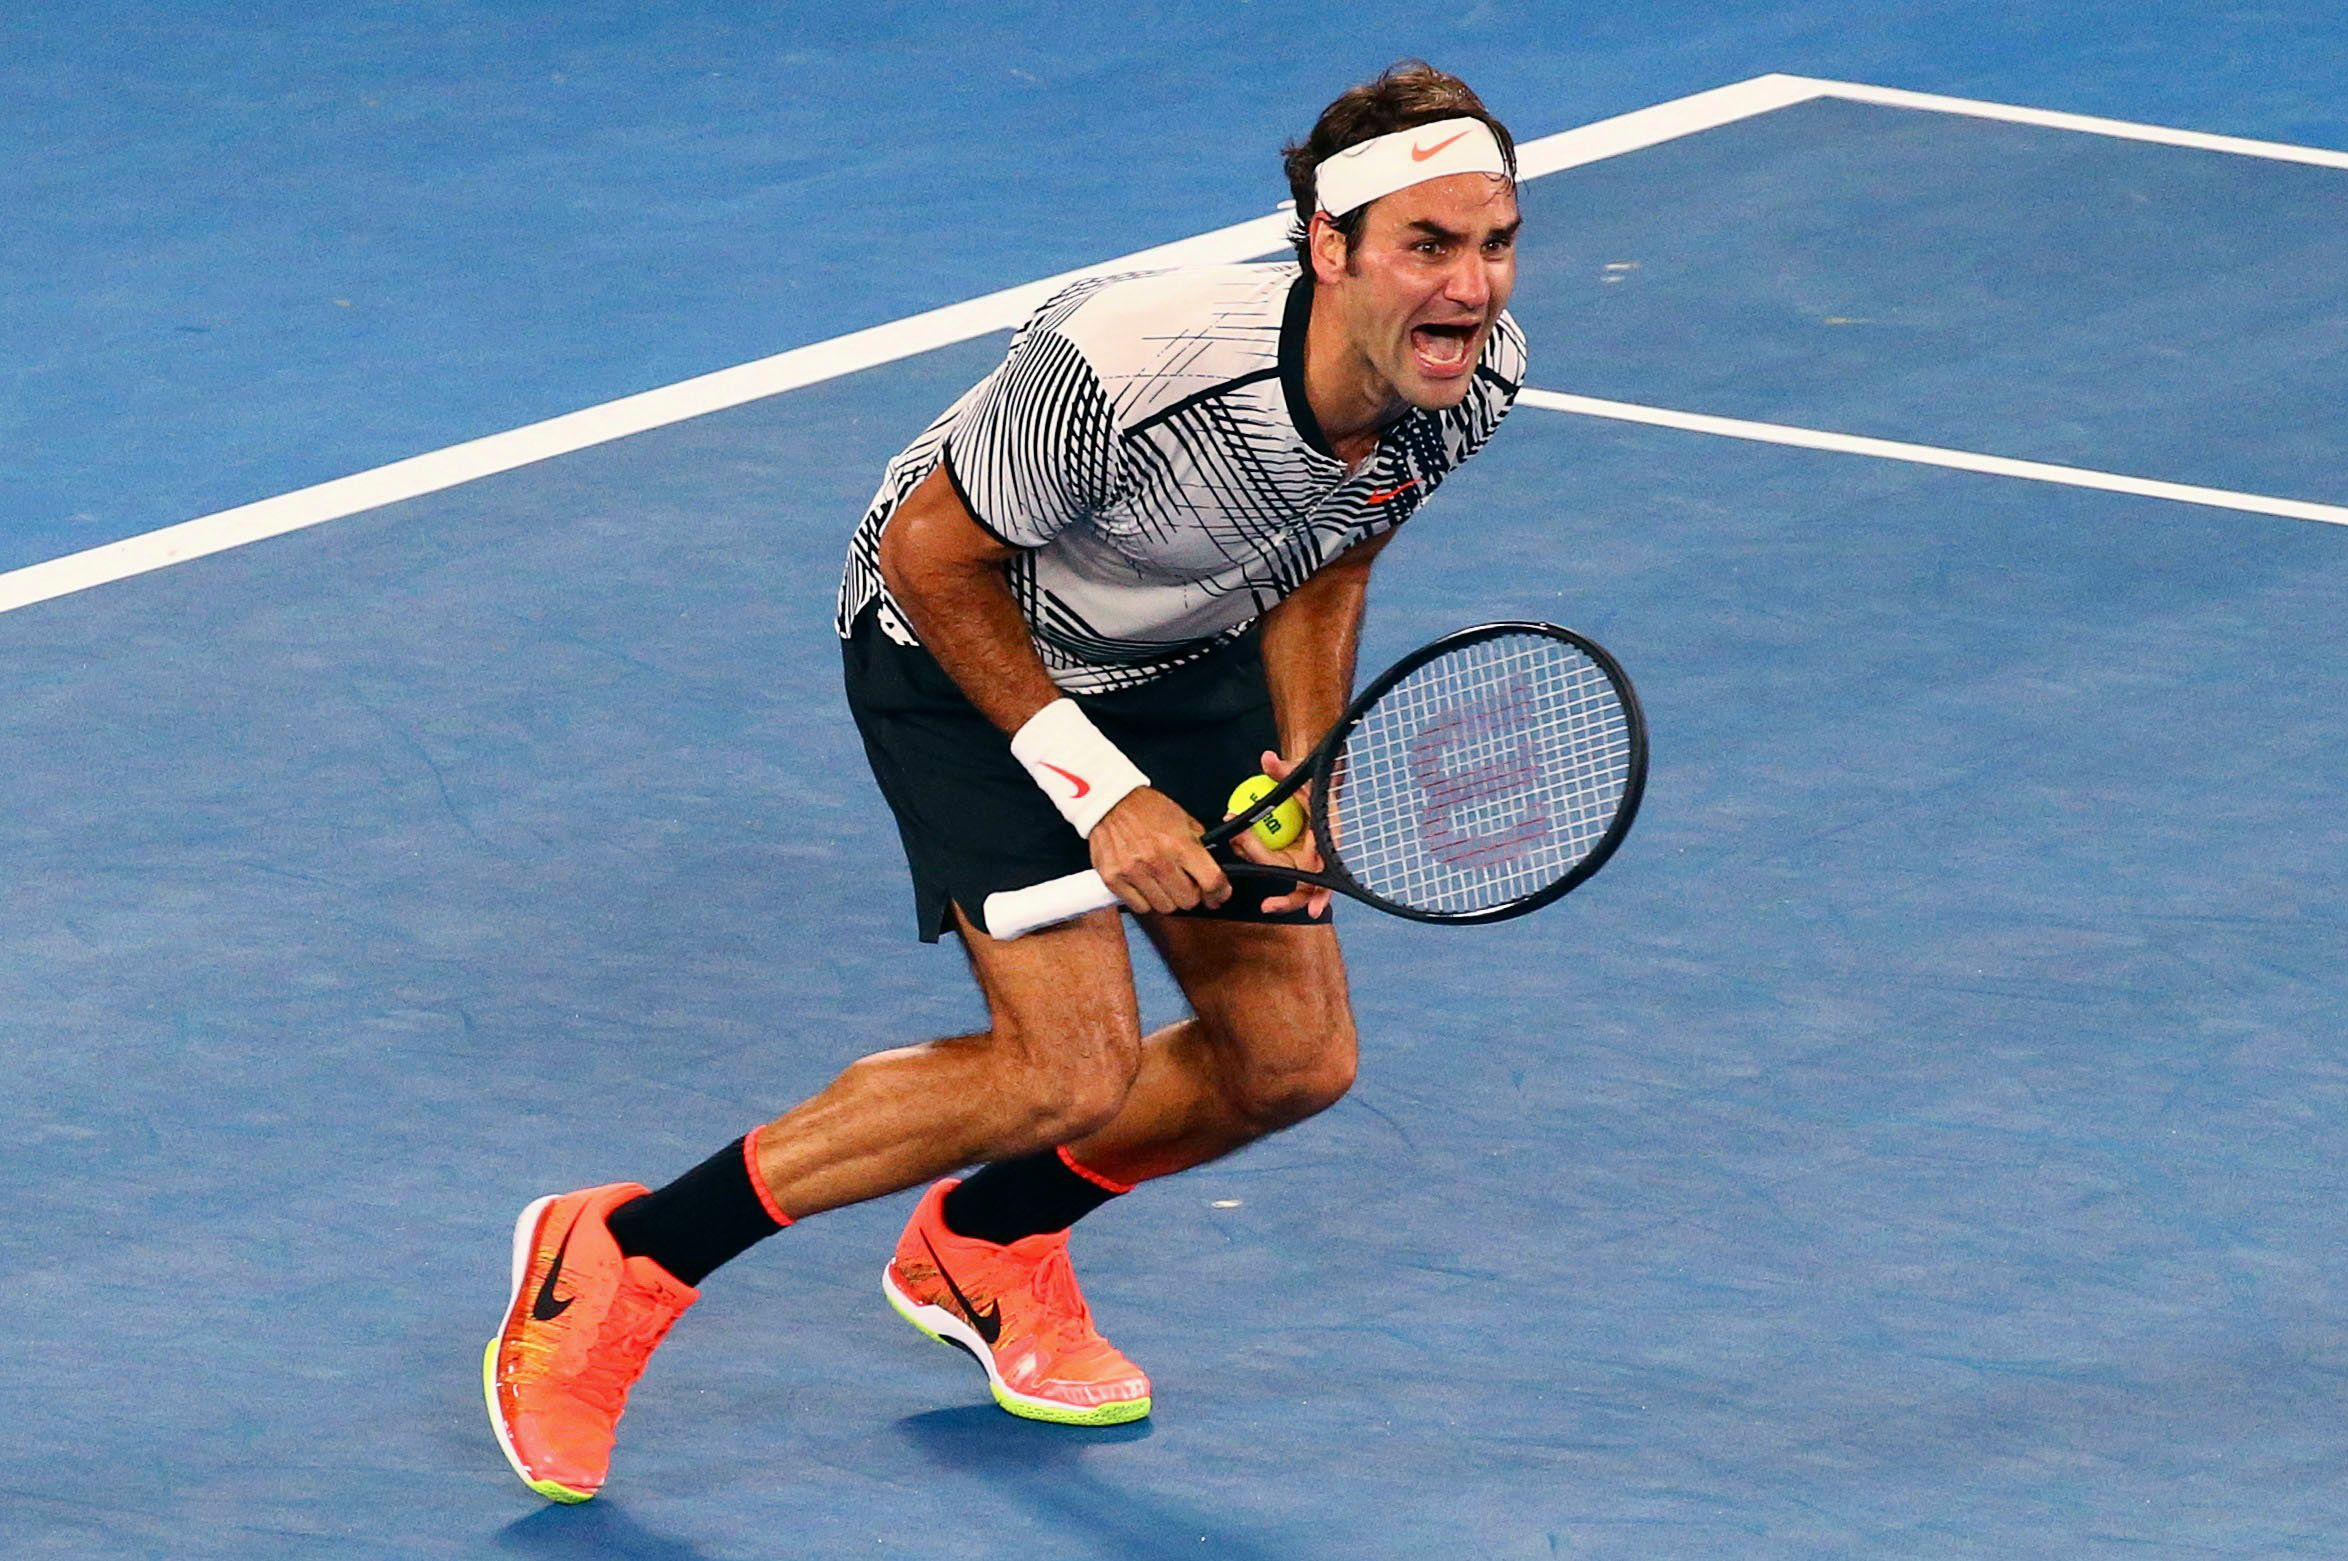 Tennis - Australian Open - Melbourne Park, Melbourne, Australia - 29/1/17  Switzerland's Roger Federer celebrates winning his Men's singles final match against Spain's Rafael Nadal. REUTERS/David Gray  TPX IMAGES OF THE DAY